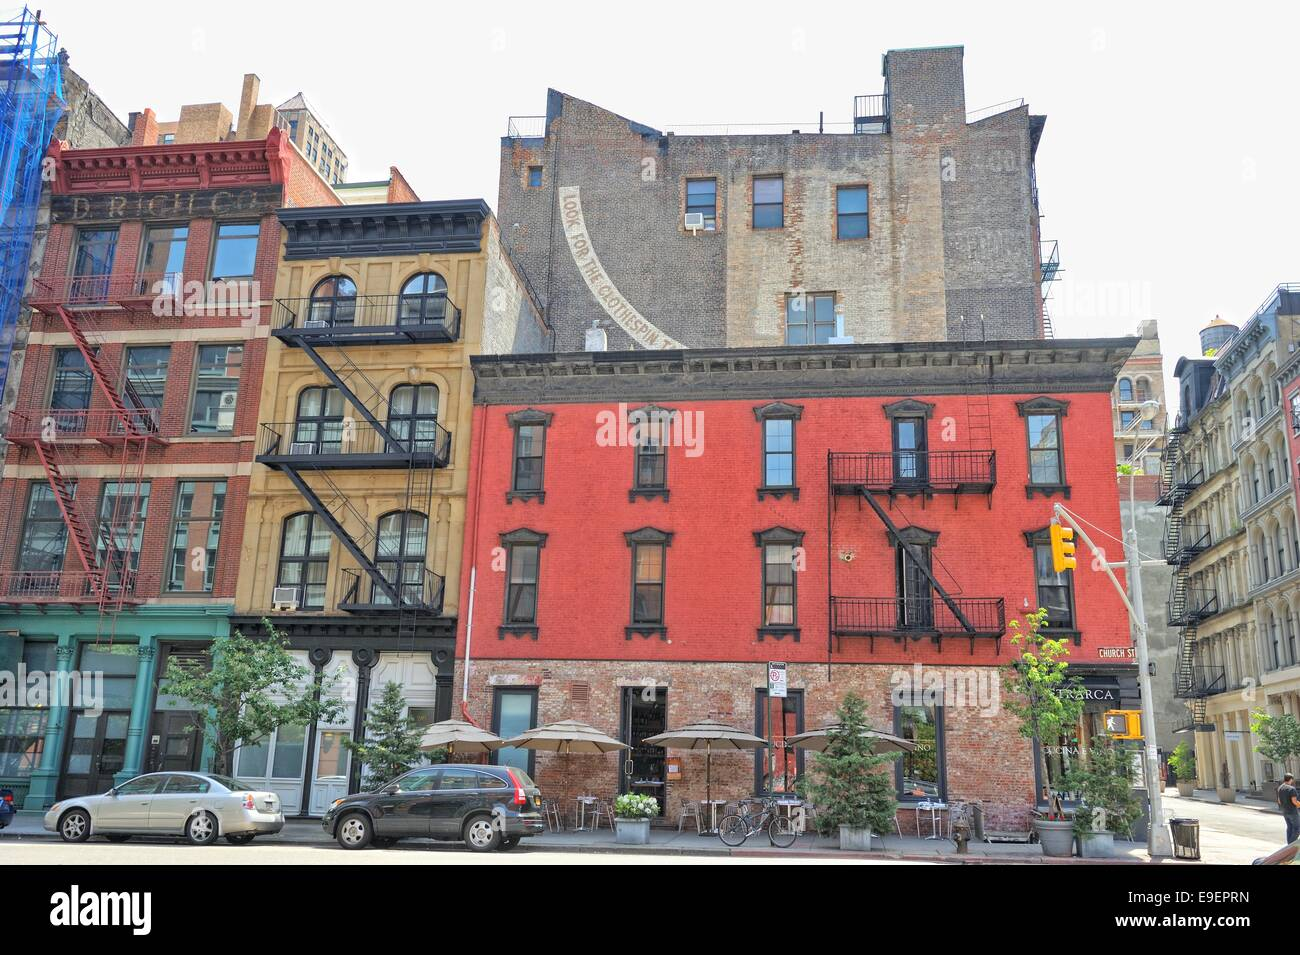 The red brick building the street view in New York city Stock